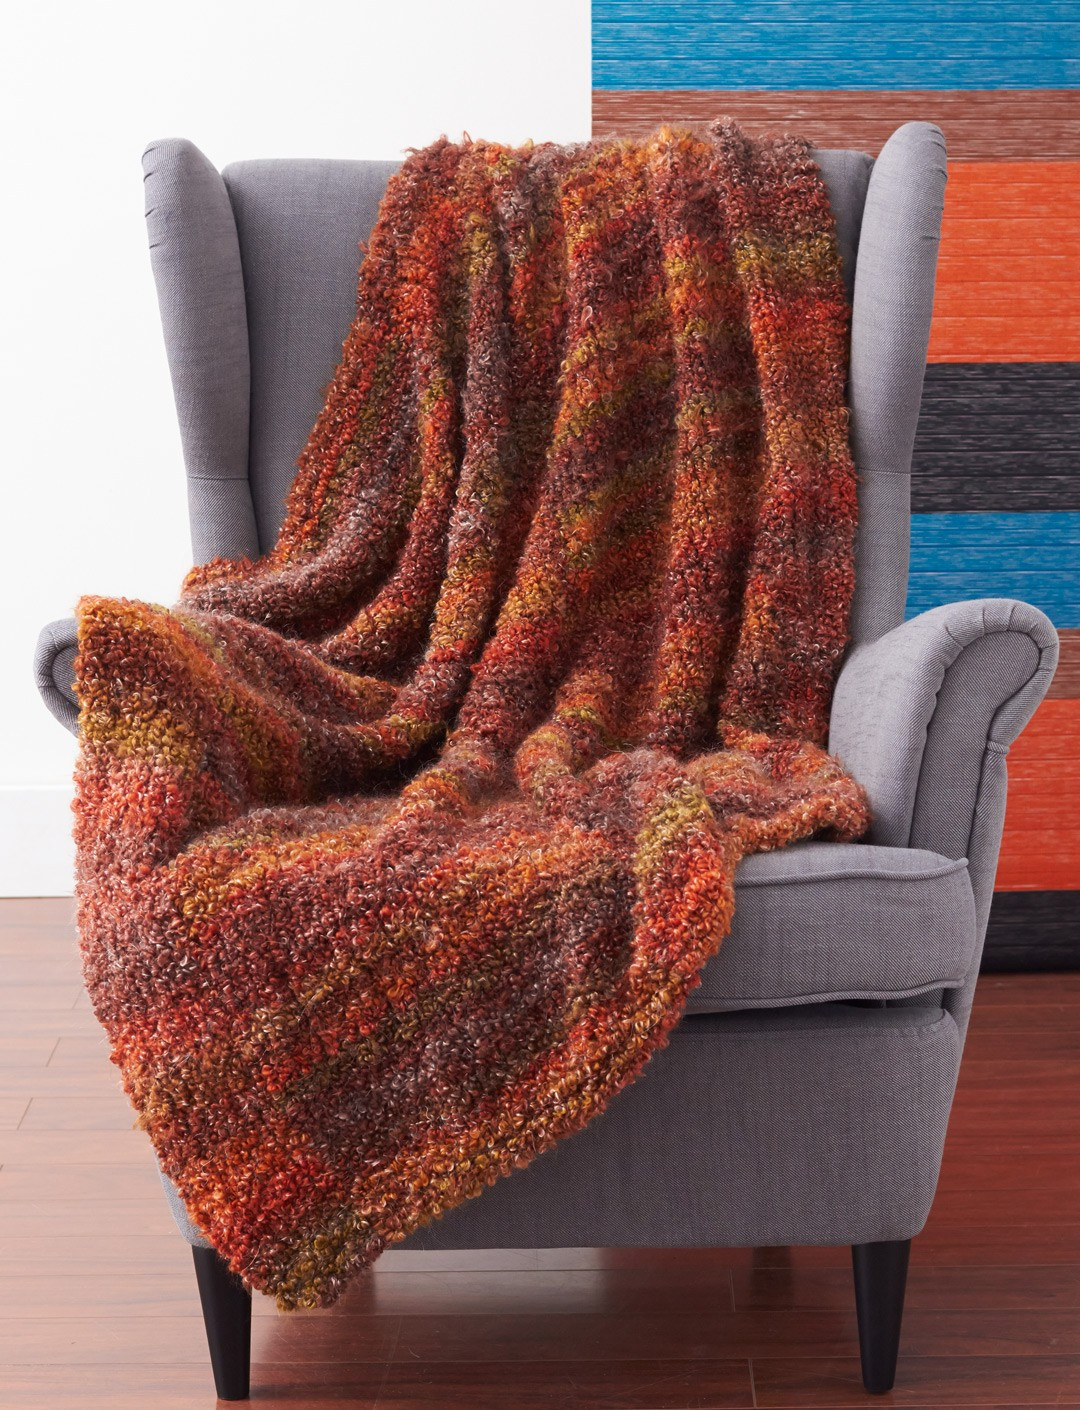 Awesome Patons Cozy and Quick Blanket Knit Pattern Patons Yarn Patterns Of Adorable 48 Images Patons Yarn Patterns